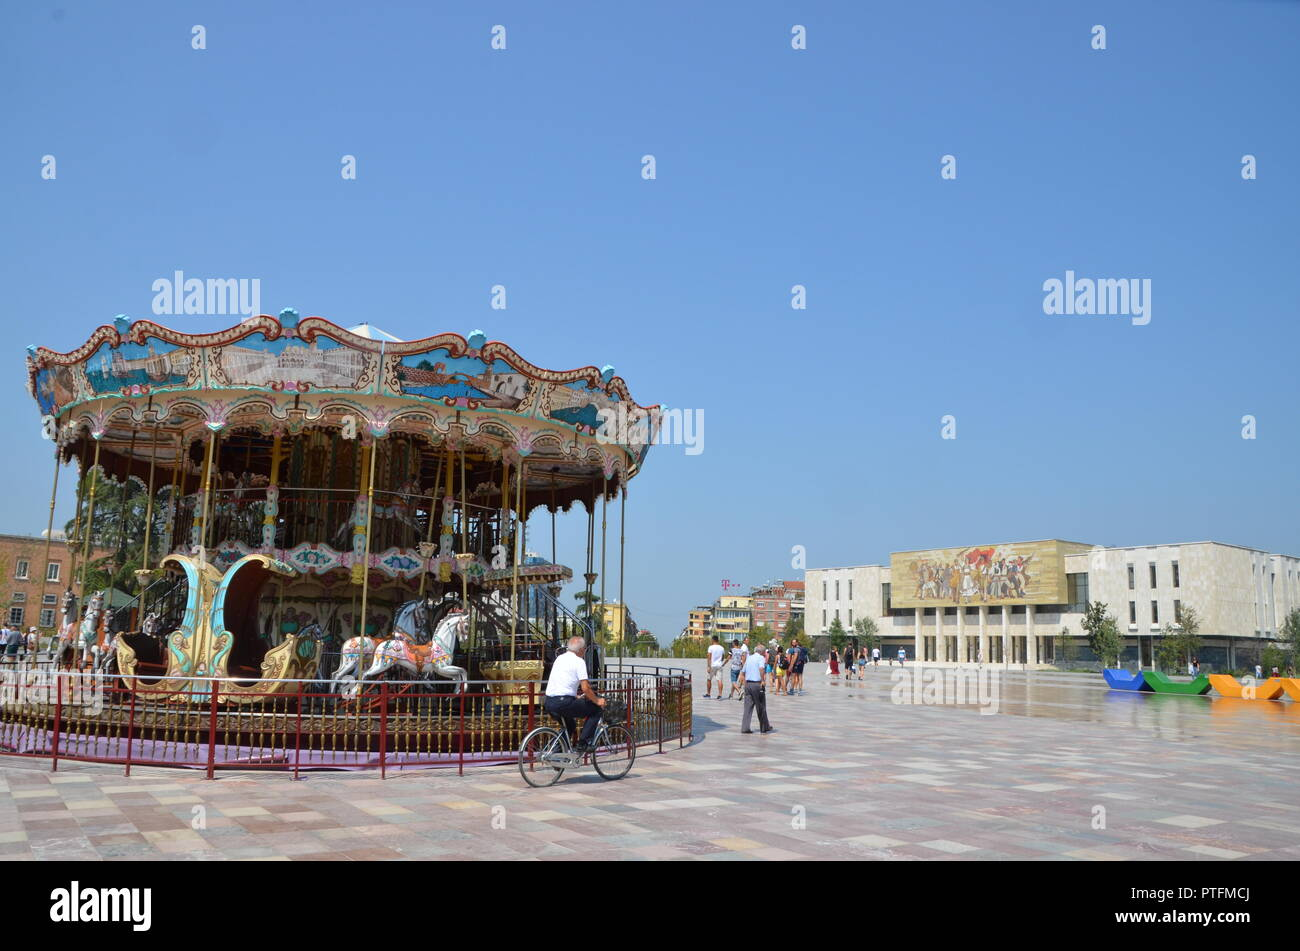 the old carousel in skanderbeg square tirana albania - Stock Image